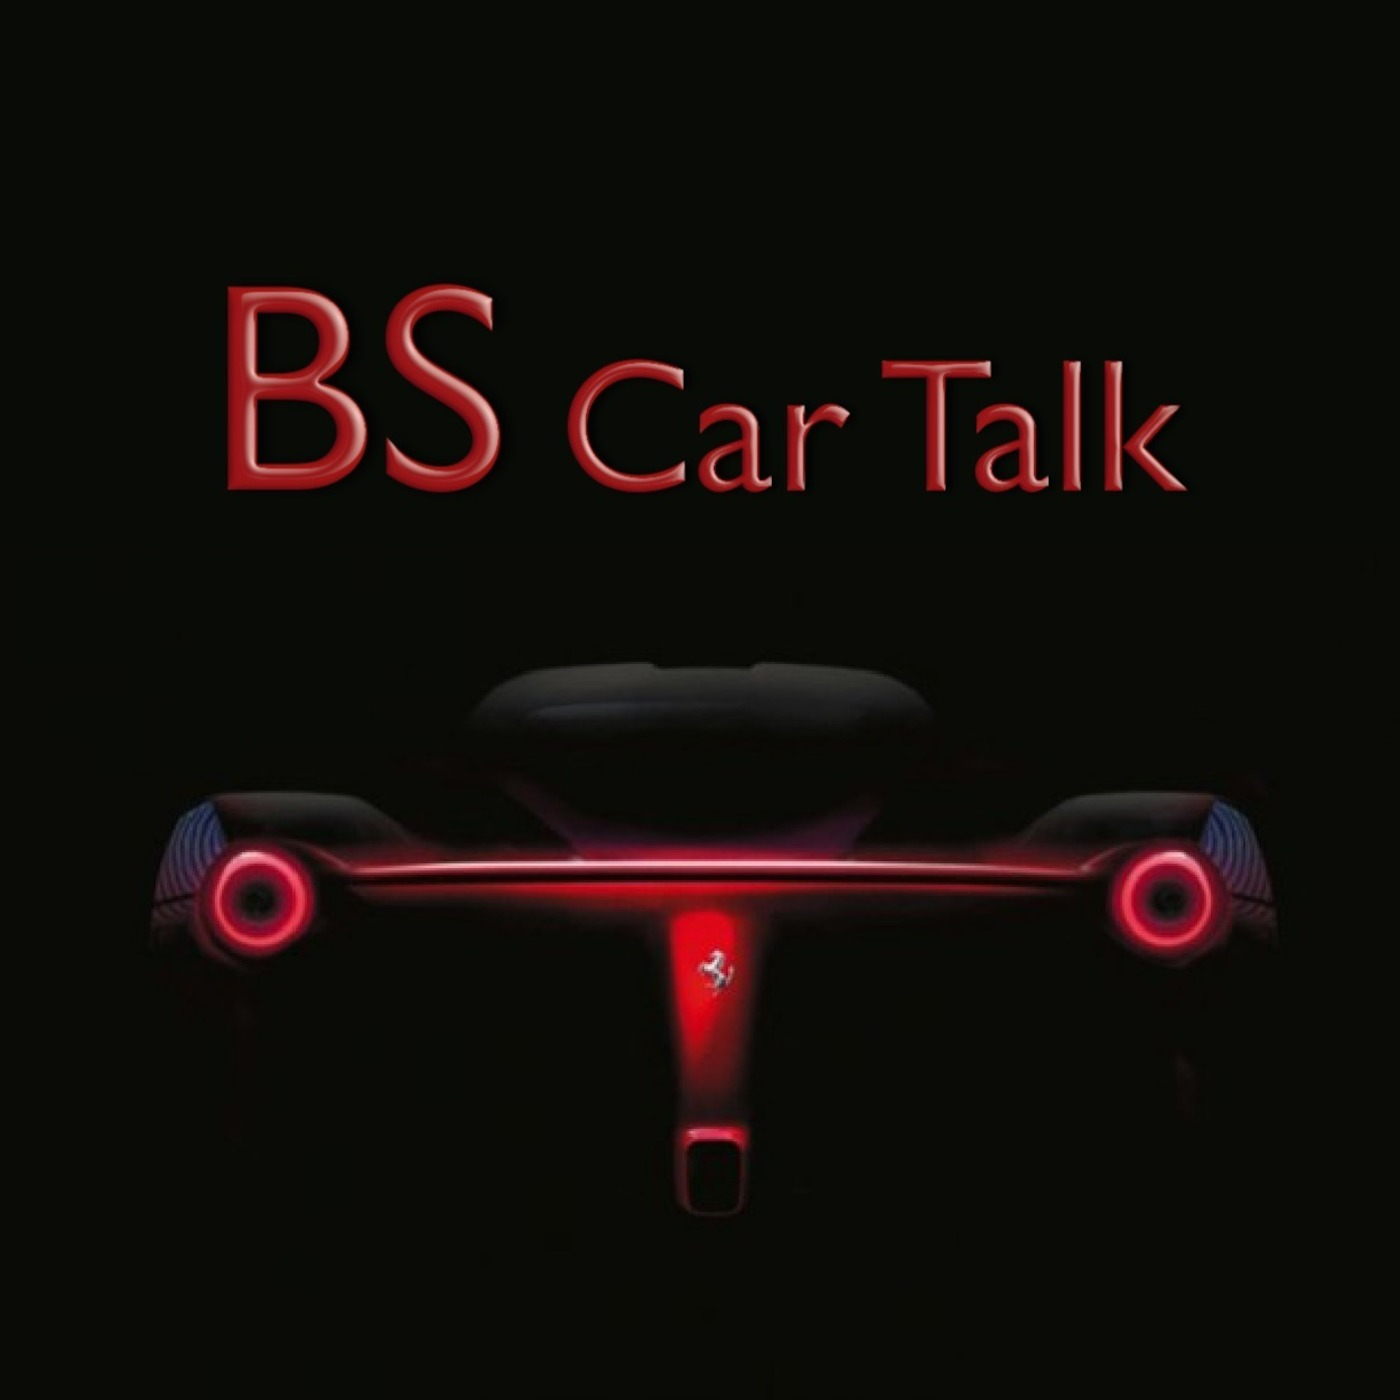 BS Car Talk